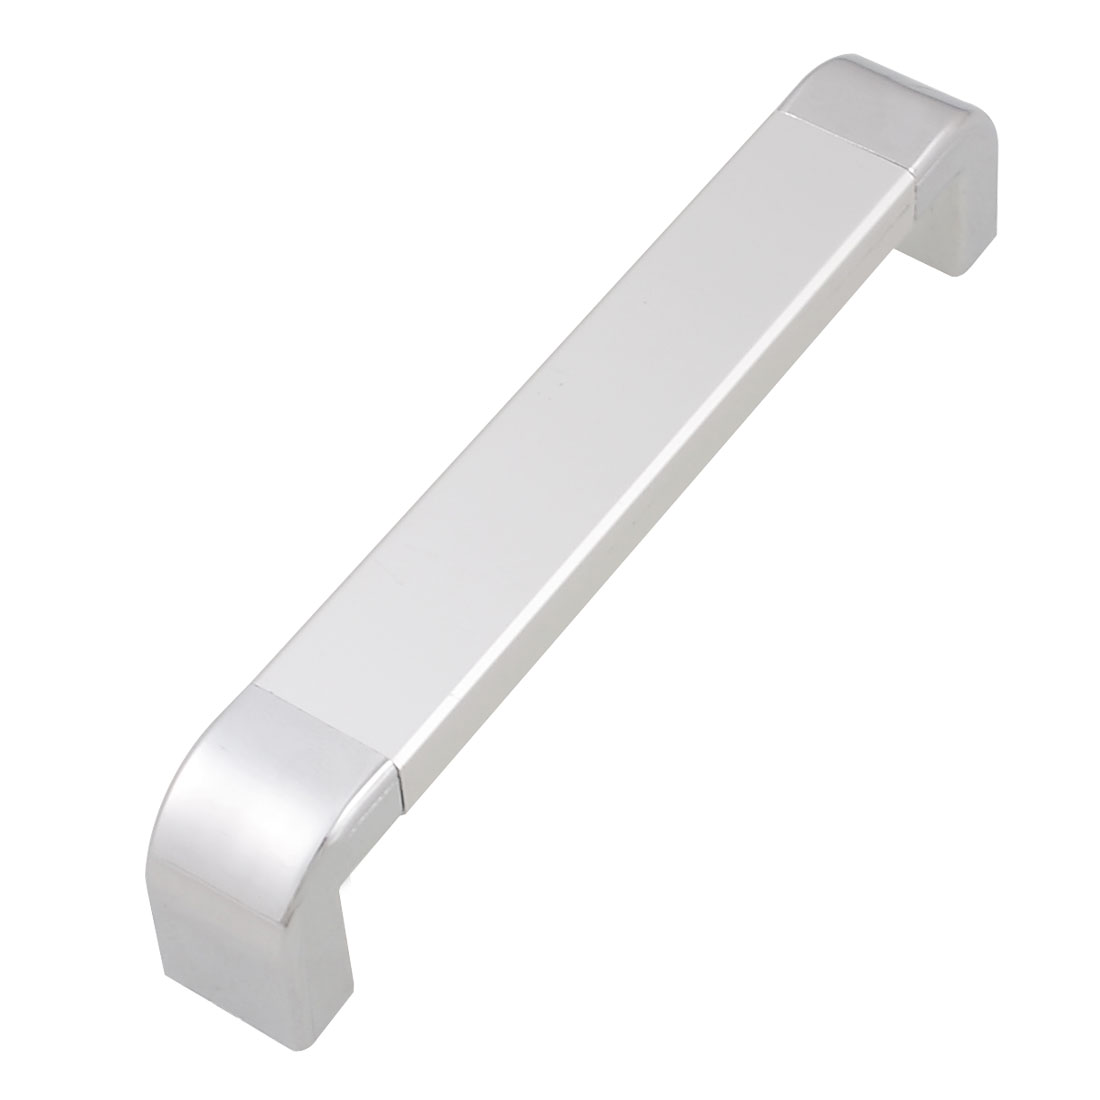 14cm Long Rectangle Cabinet Furniture Drawer Door Pull Handle Hardware Knobs